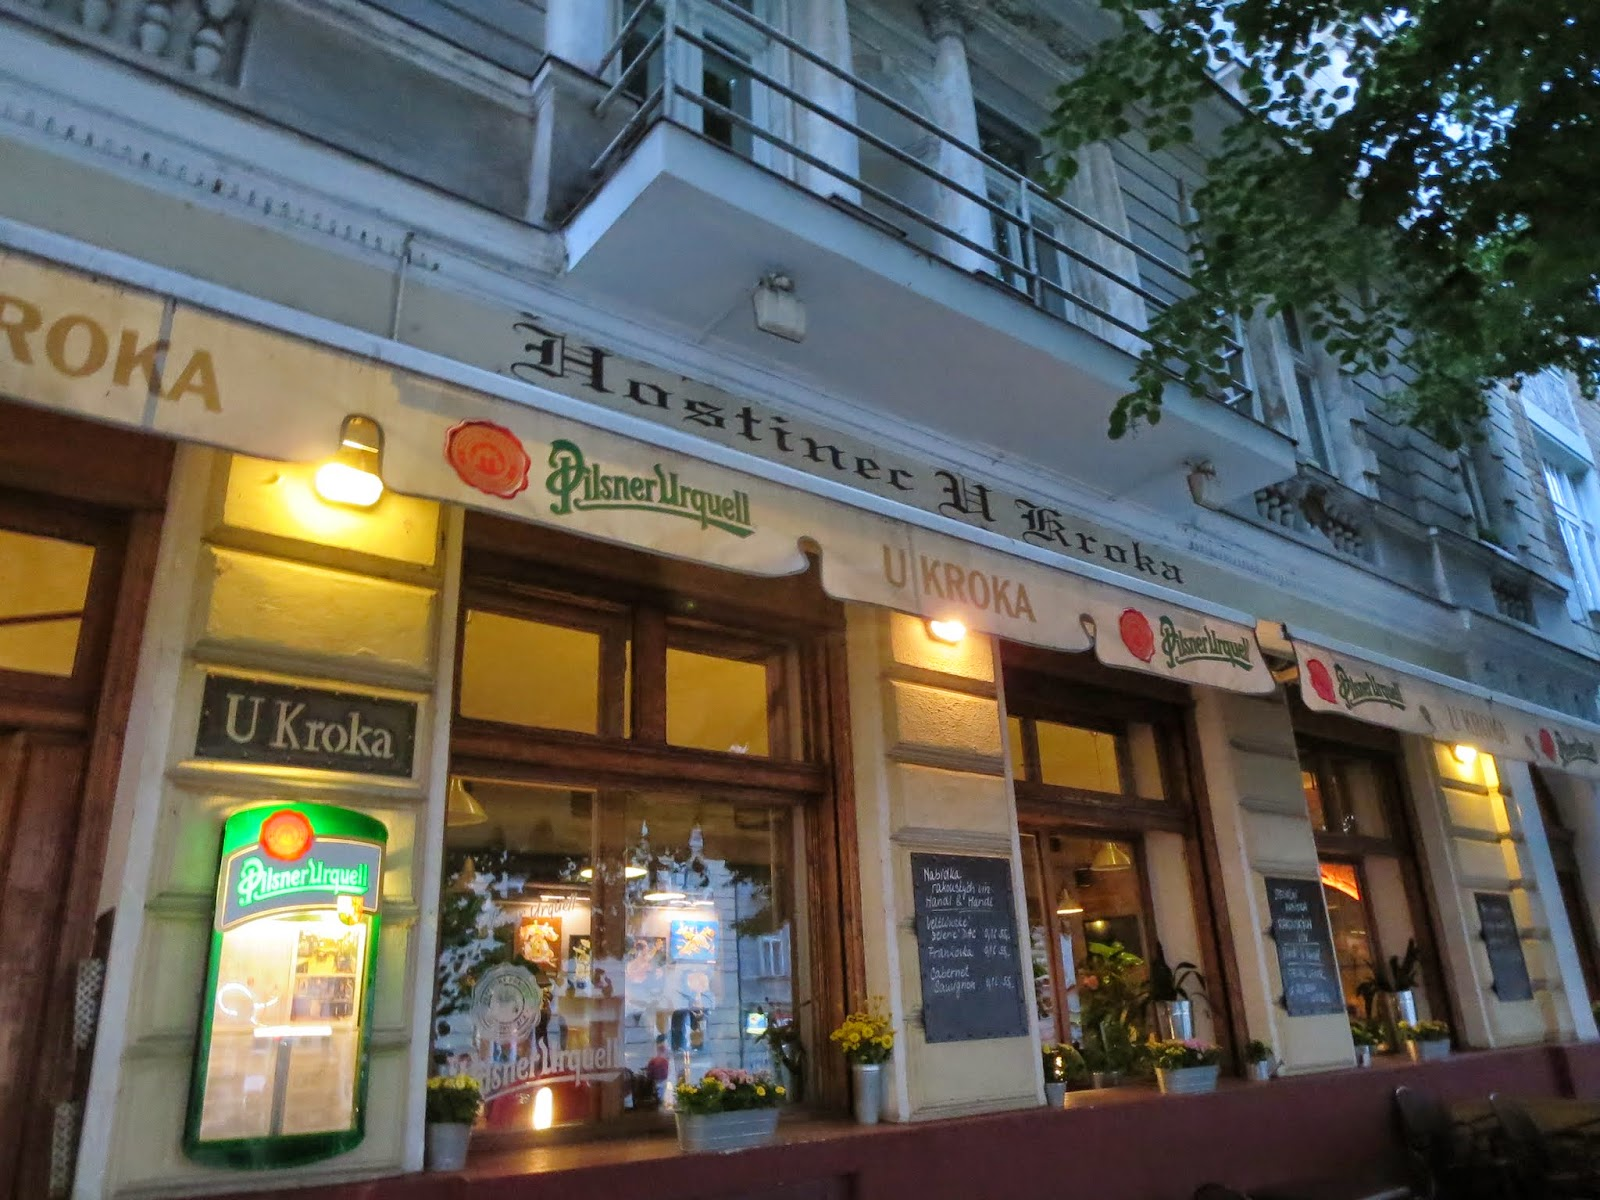 Exterior of Restaurace U Kroka in Prague